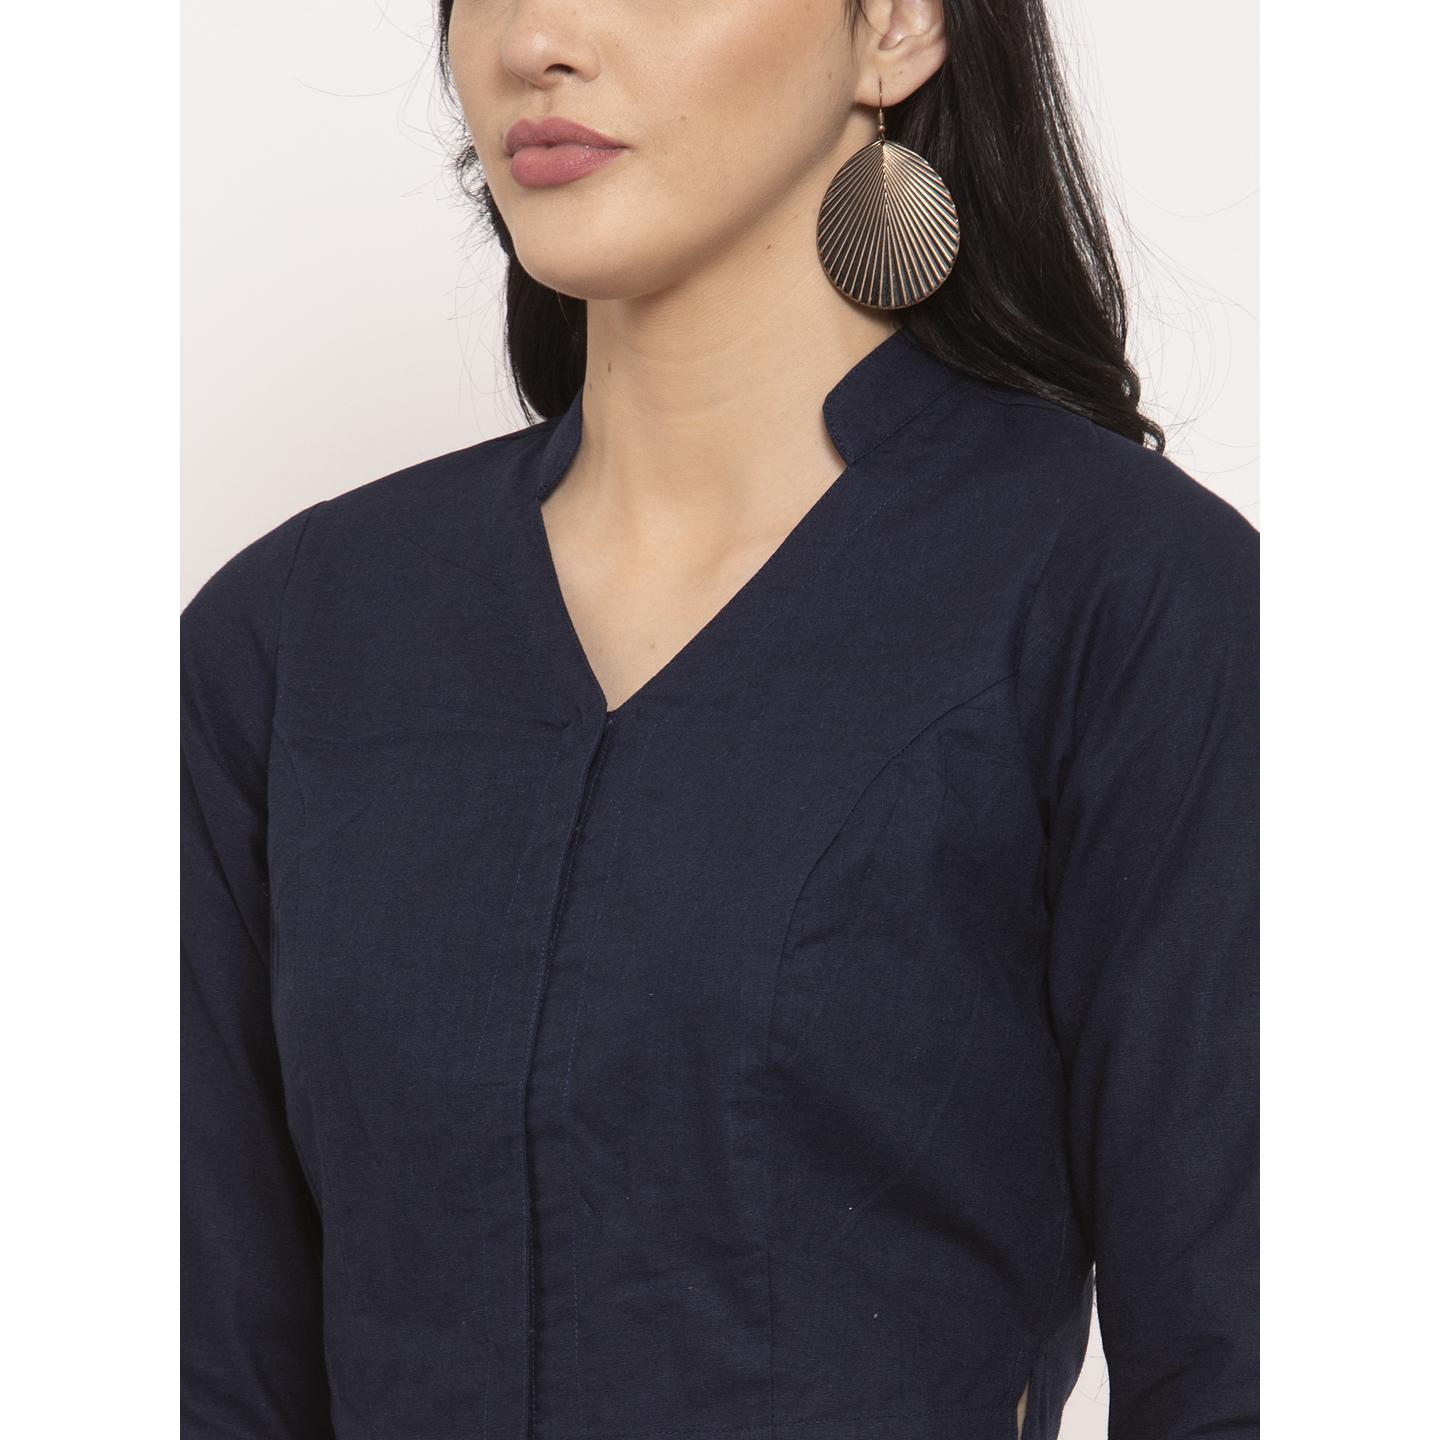 Ayaany - Blue Colored Casual Wear Pure Cotton Blouse